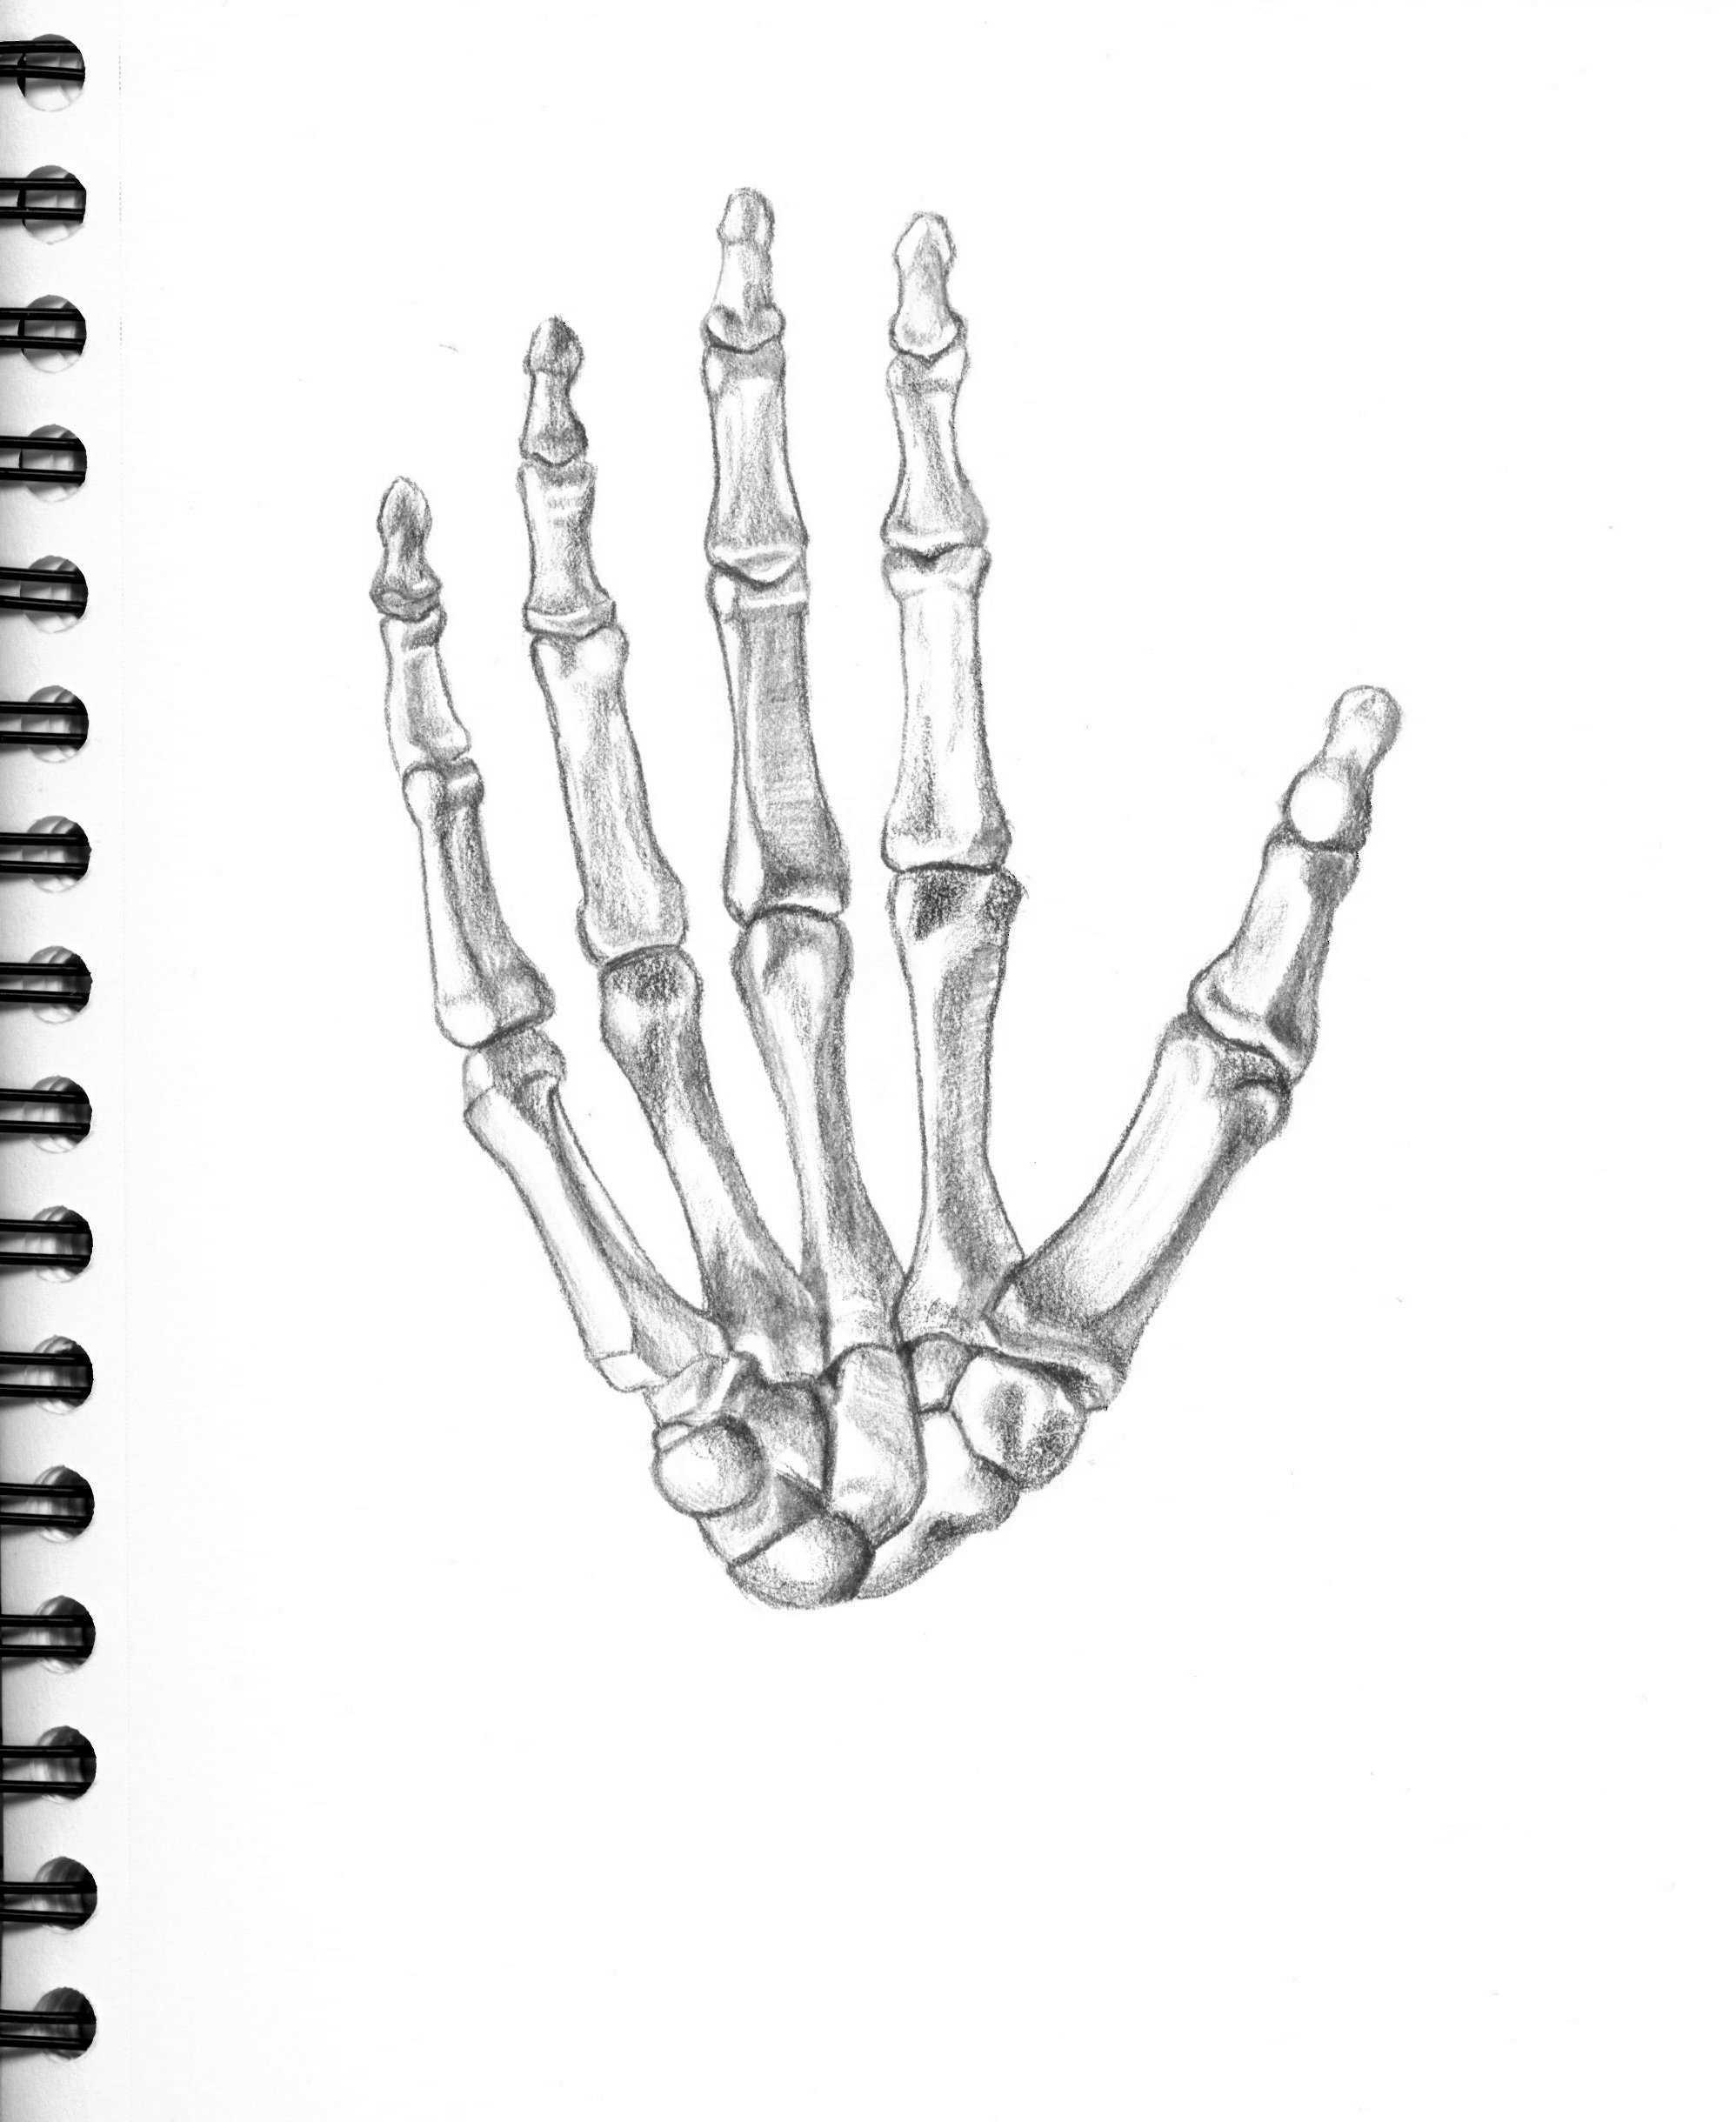 skeleton hand drawing tutorial